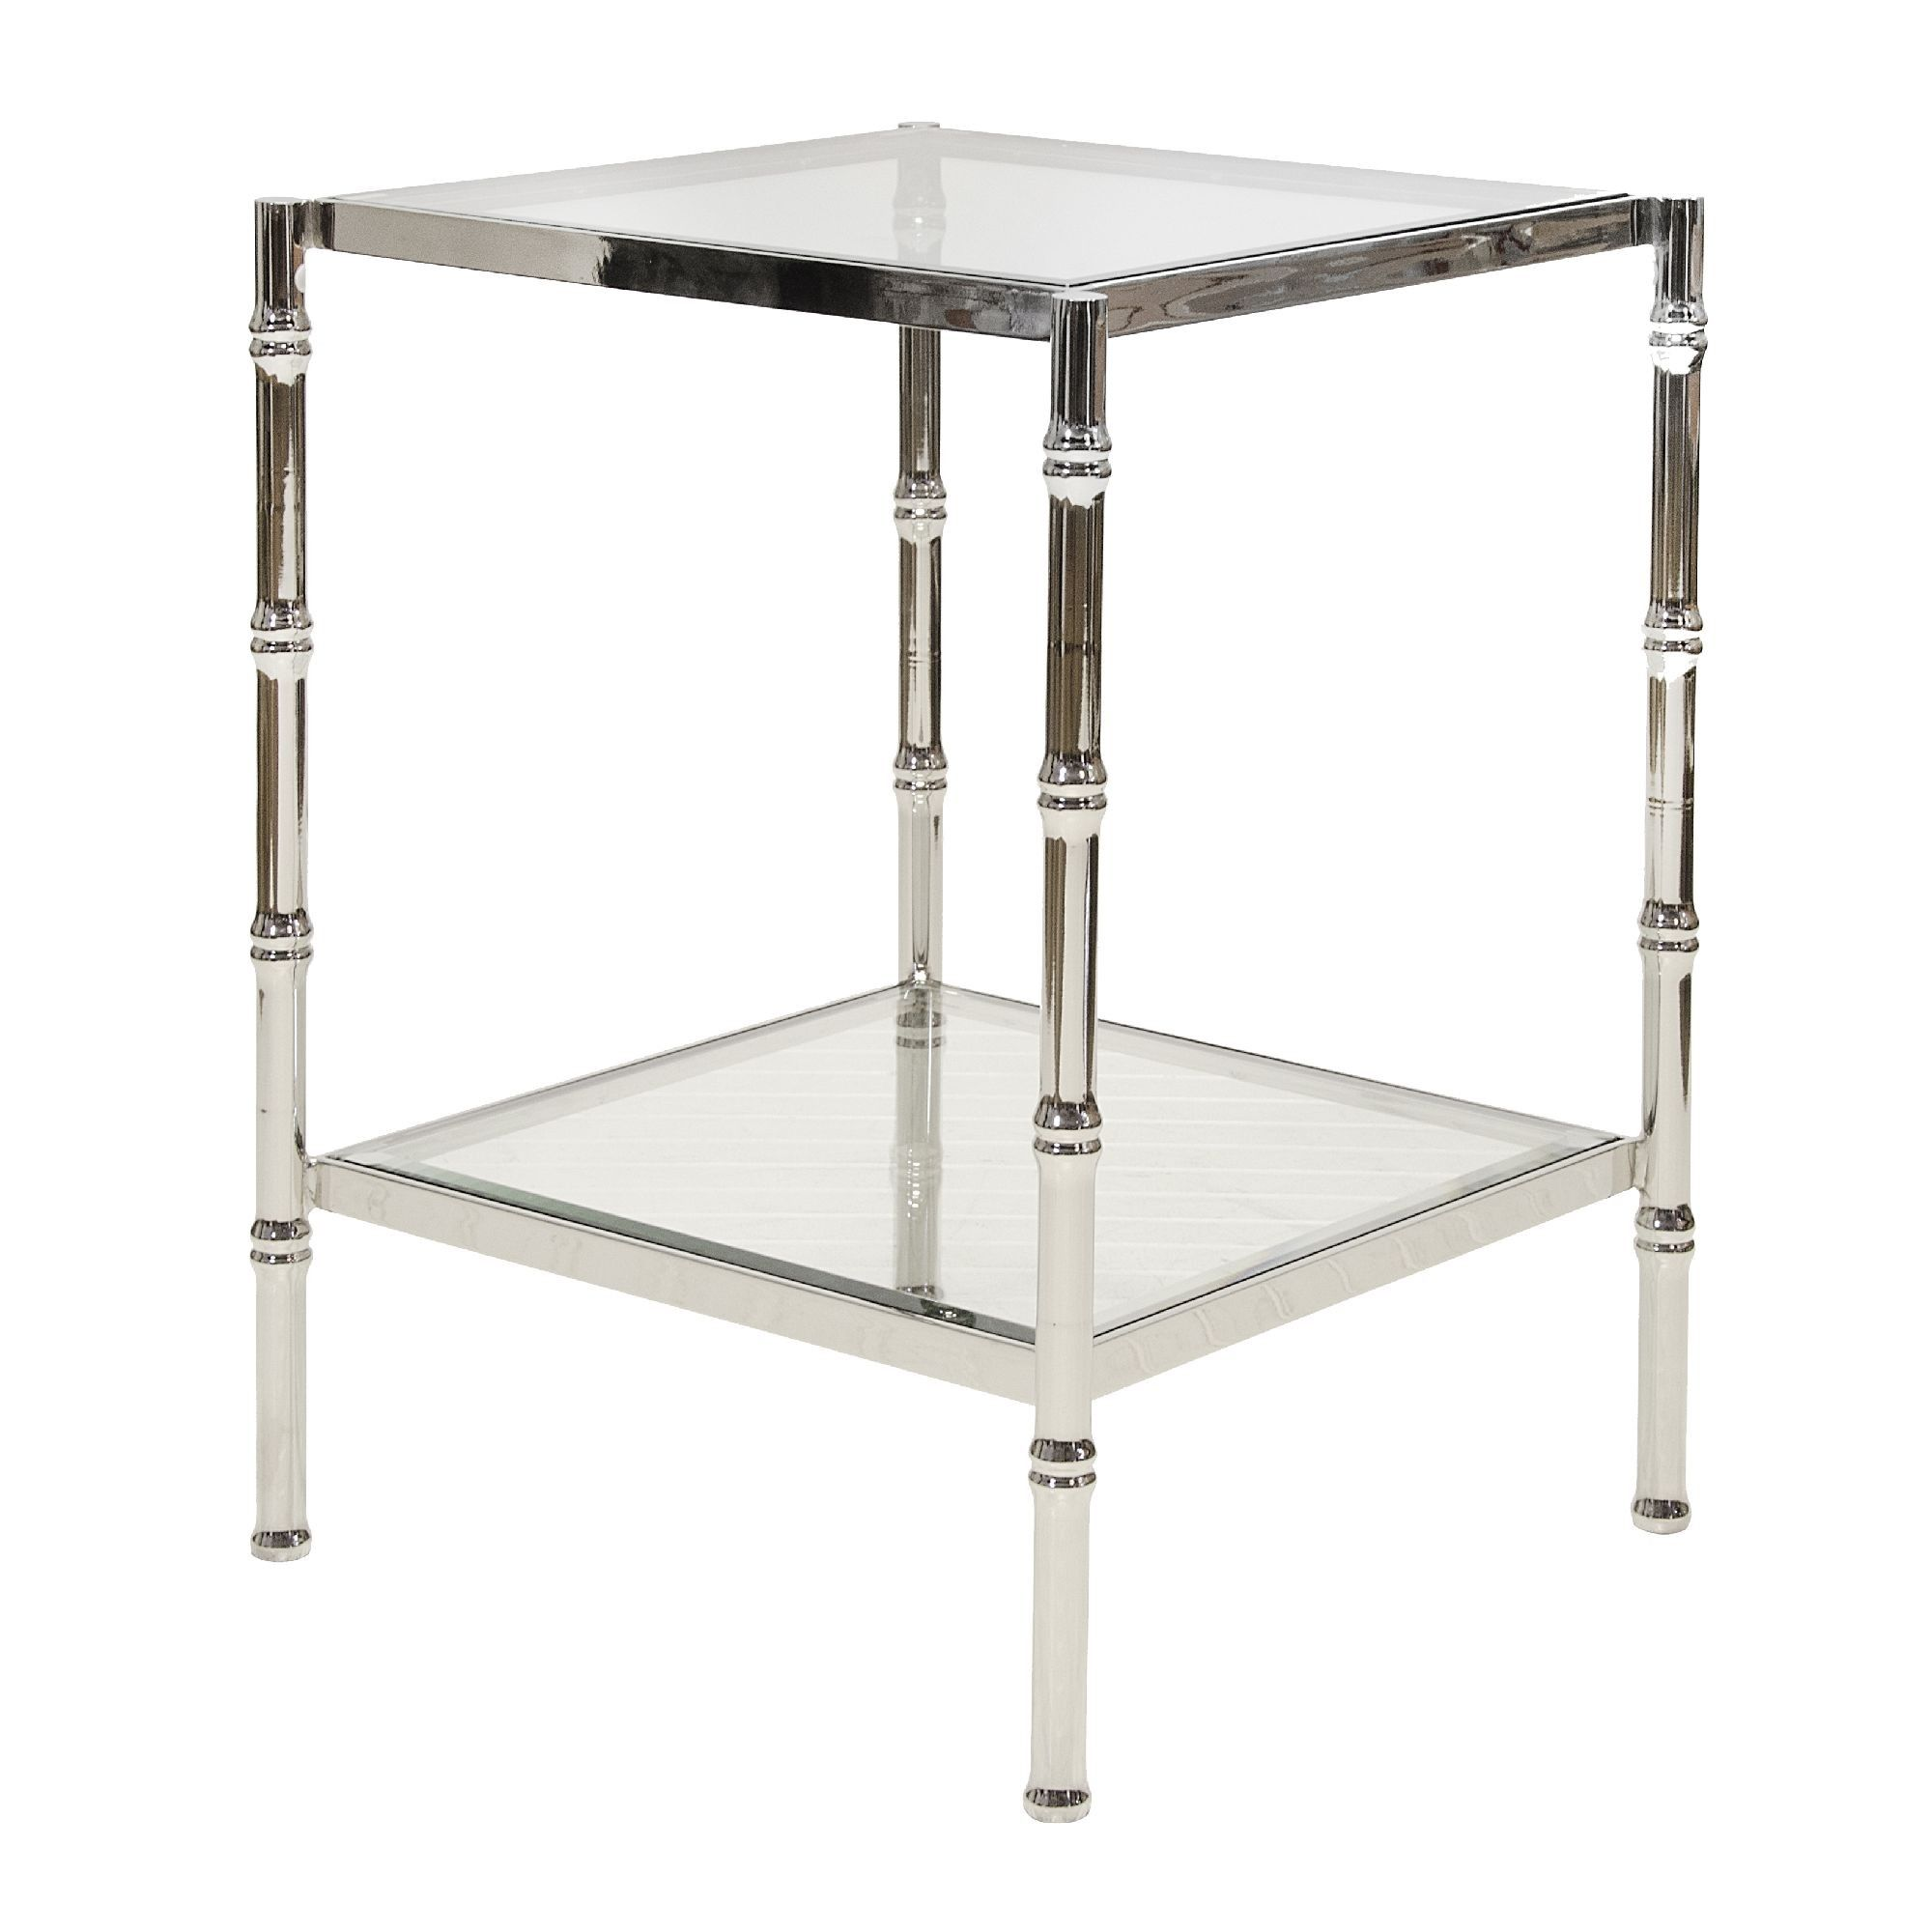 Nickel bamboo side tabe with clear glass tops Worlds Away s